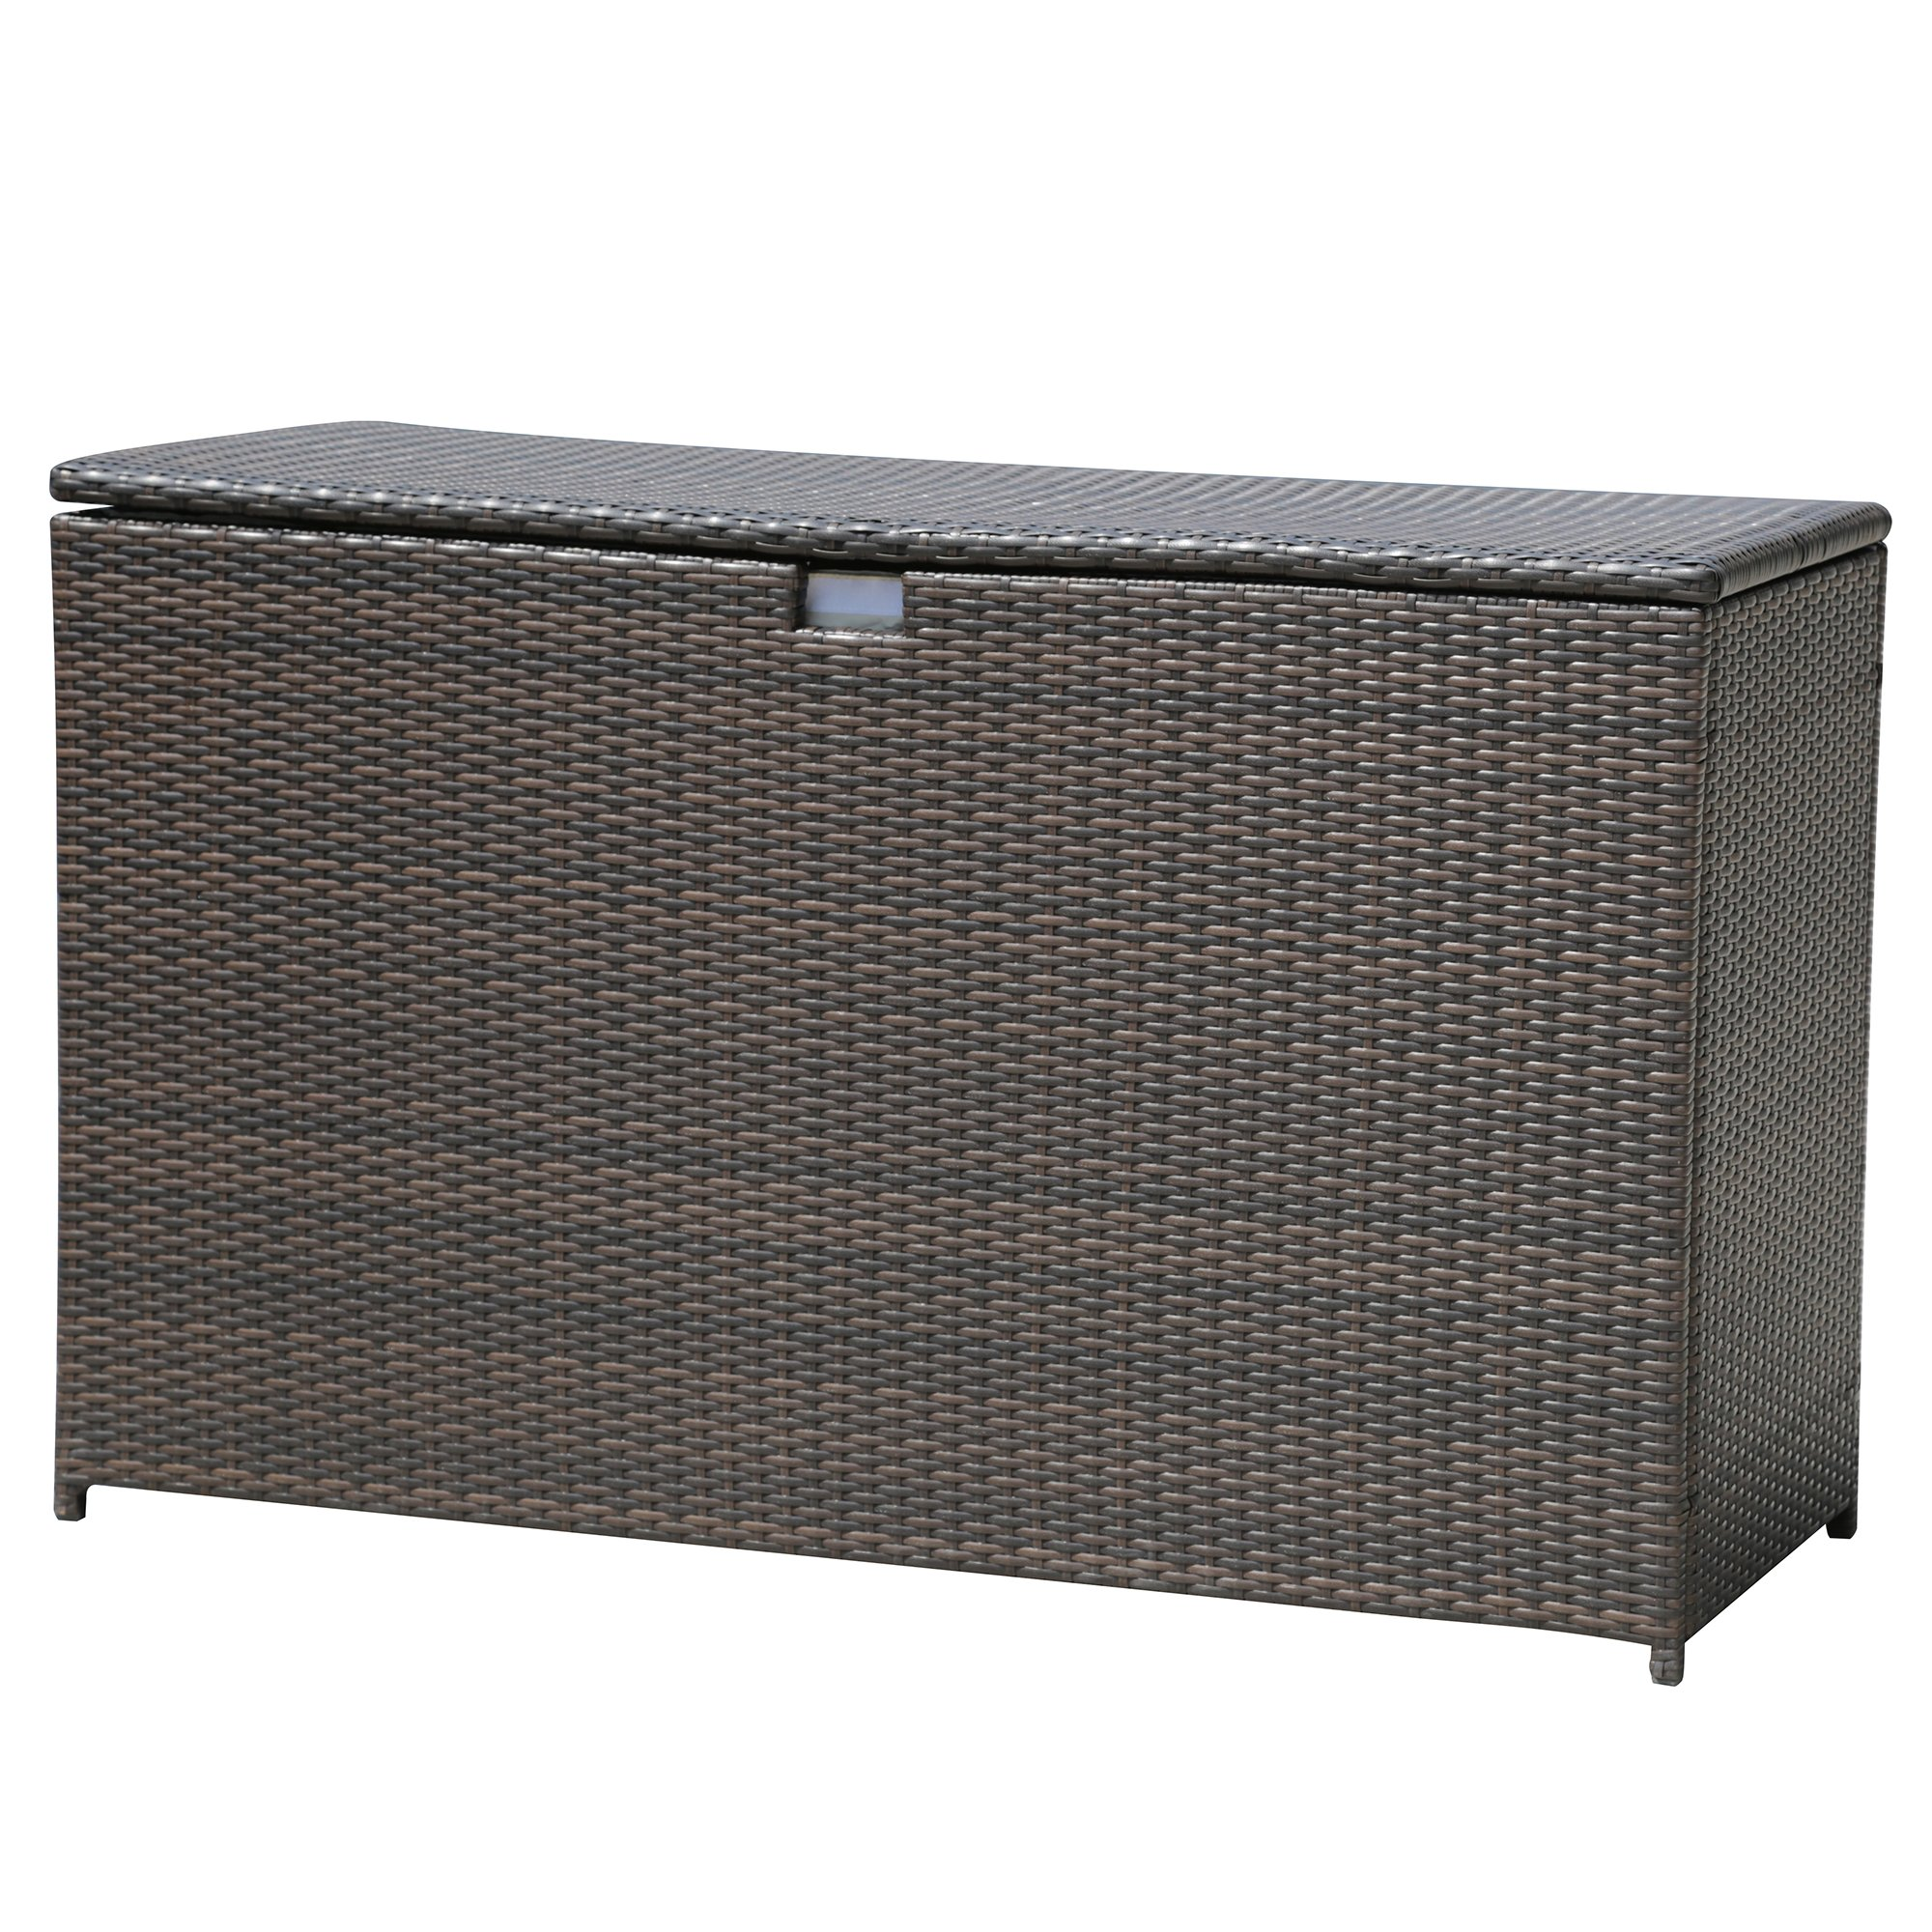 PATIOROMA Outdoor Patio Aluminum Frame Wicker Cushion Storage Bin Deck Box, Espresso Brown by PATIOROMA (Image #2)